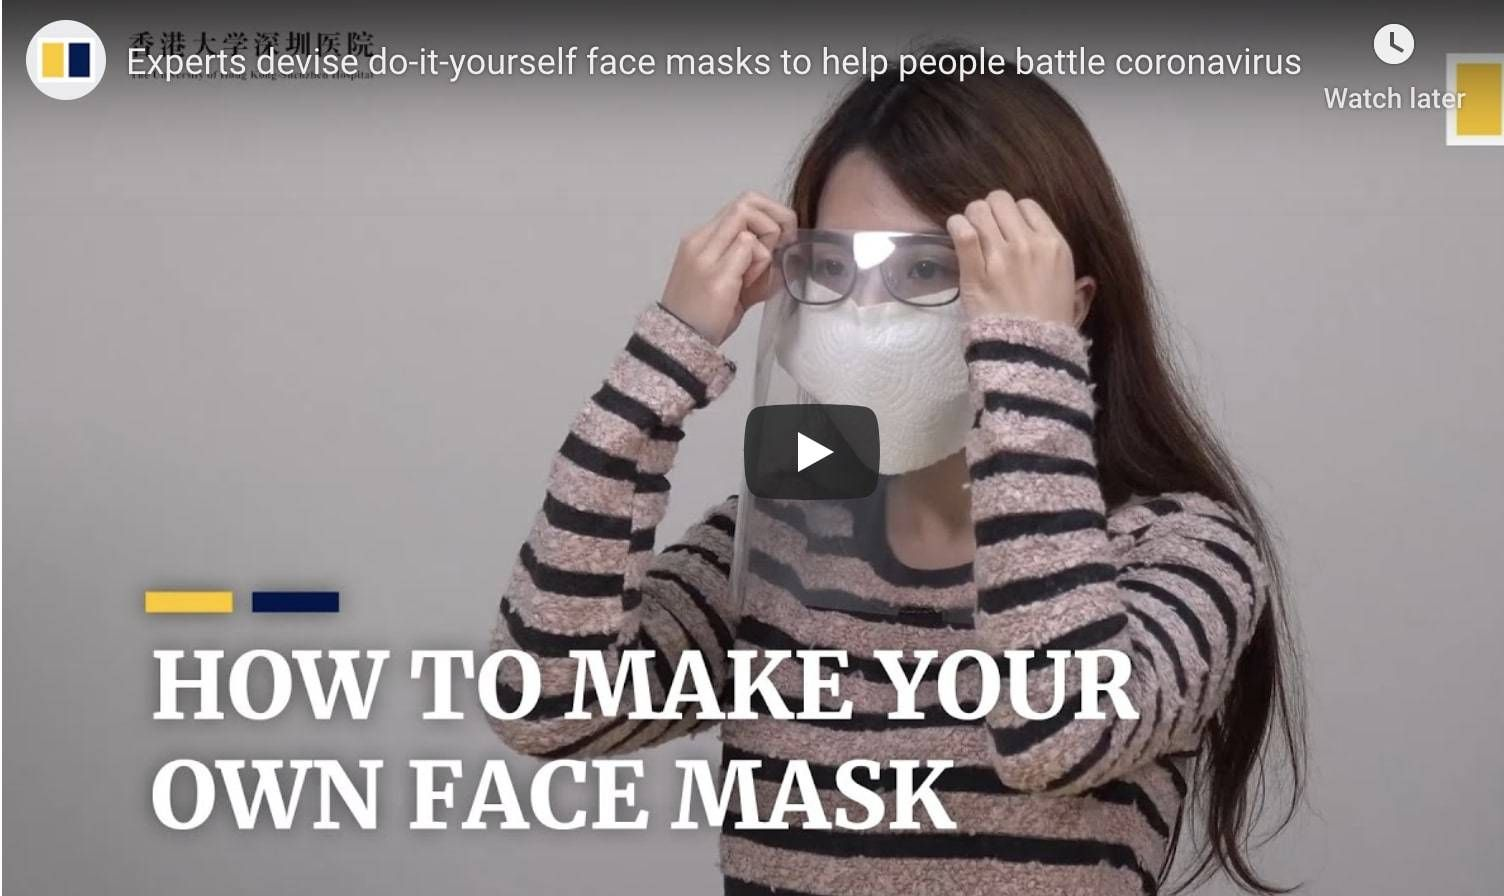 Here's a DIY Way to Make Your Own Protective Face Mask in